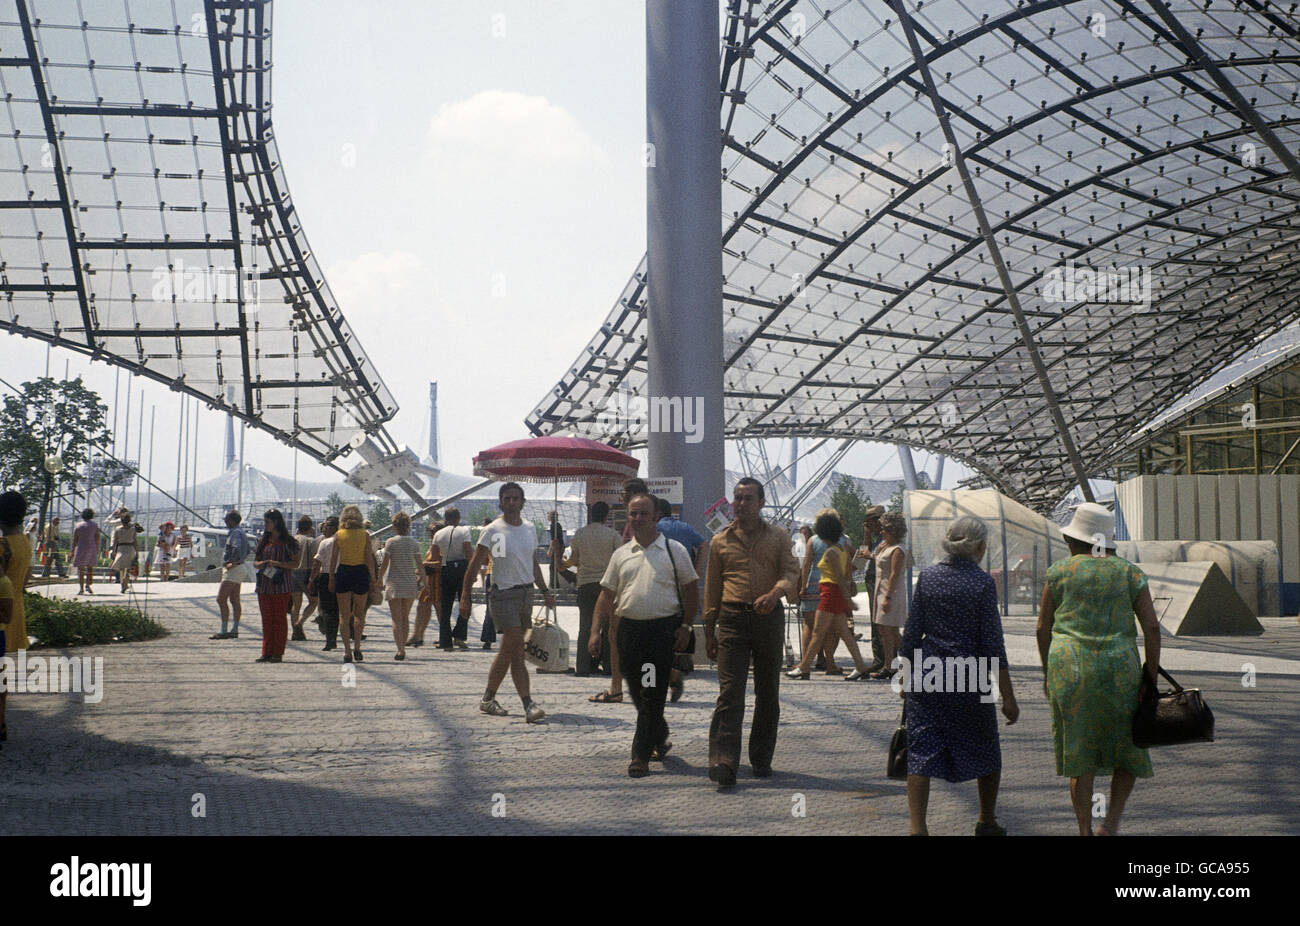 geography / travel, Germany, Bavaria, Munich, buildings, Olympic Grounds, canopy, 1972, Additional-Rights-Clearences Stock Photo